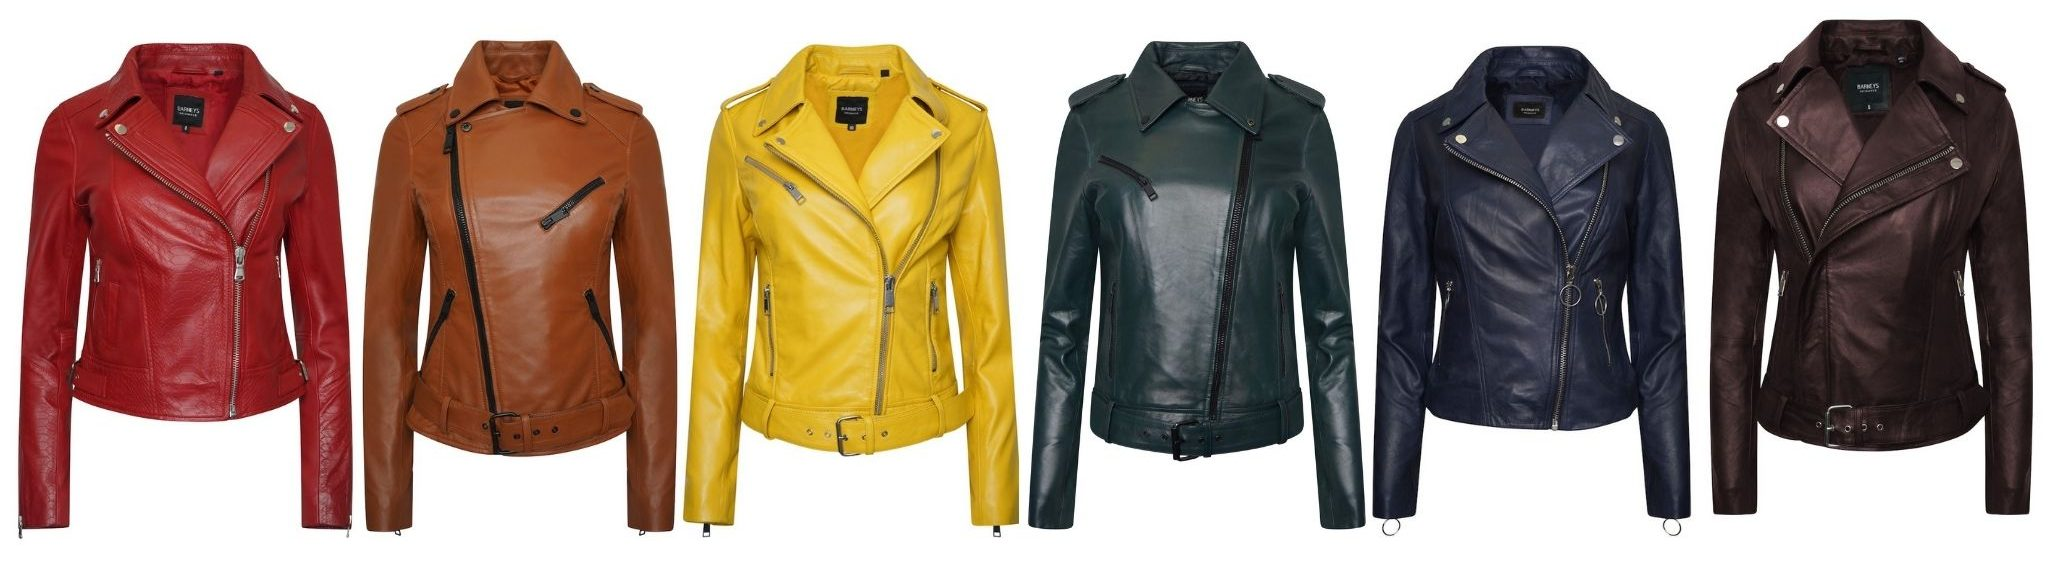 Image displays a rainbow display of coloured leather jackets starting with red, brown, yellow, forest green, blue and burgundy. The coloured leather jackets are from Barneys Originals.